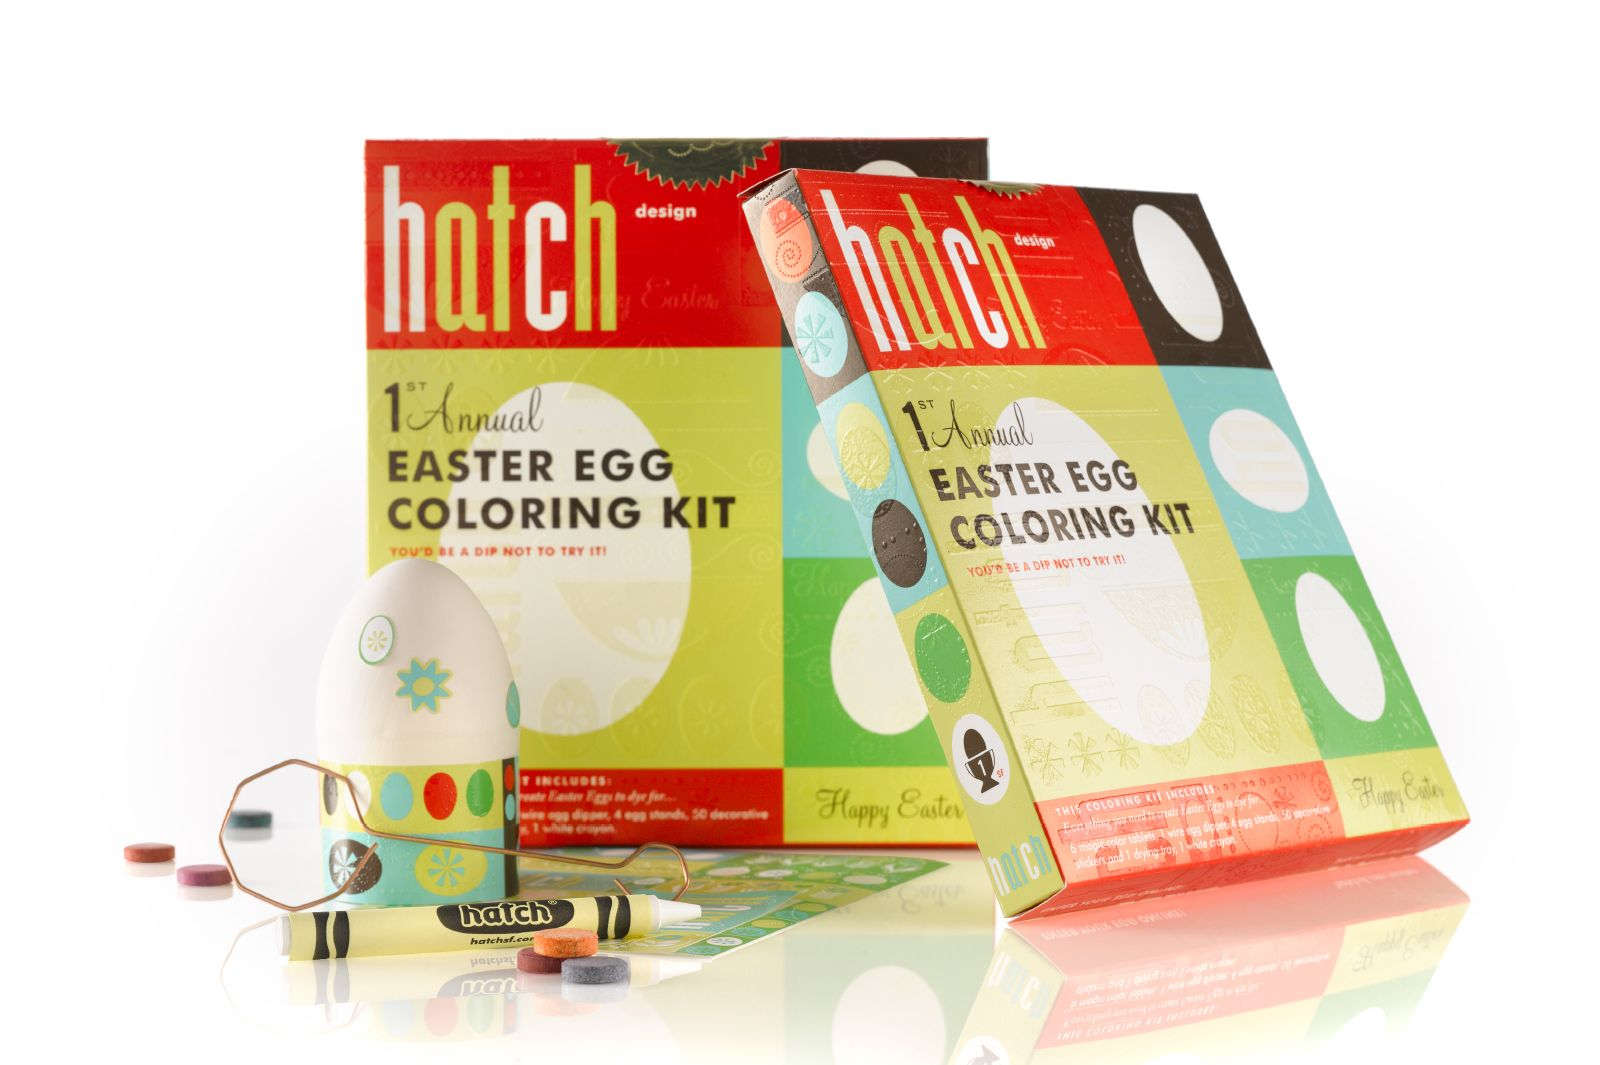 1st Annual Hatch Egg Coloring Kit, circa 2008